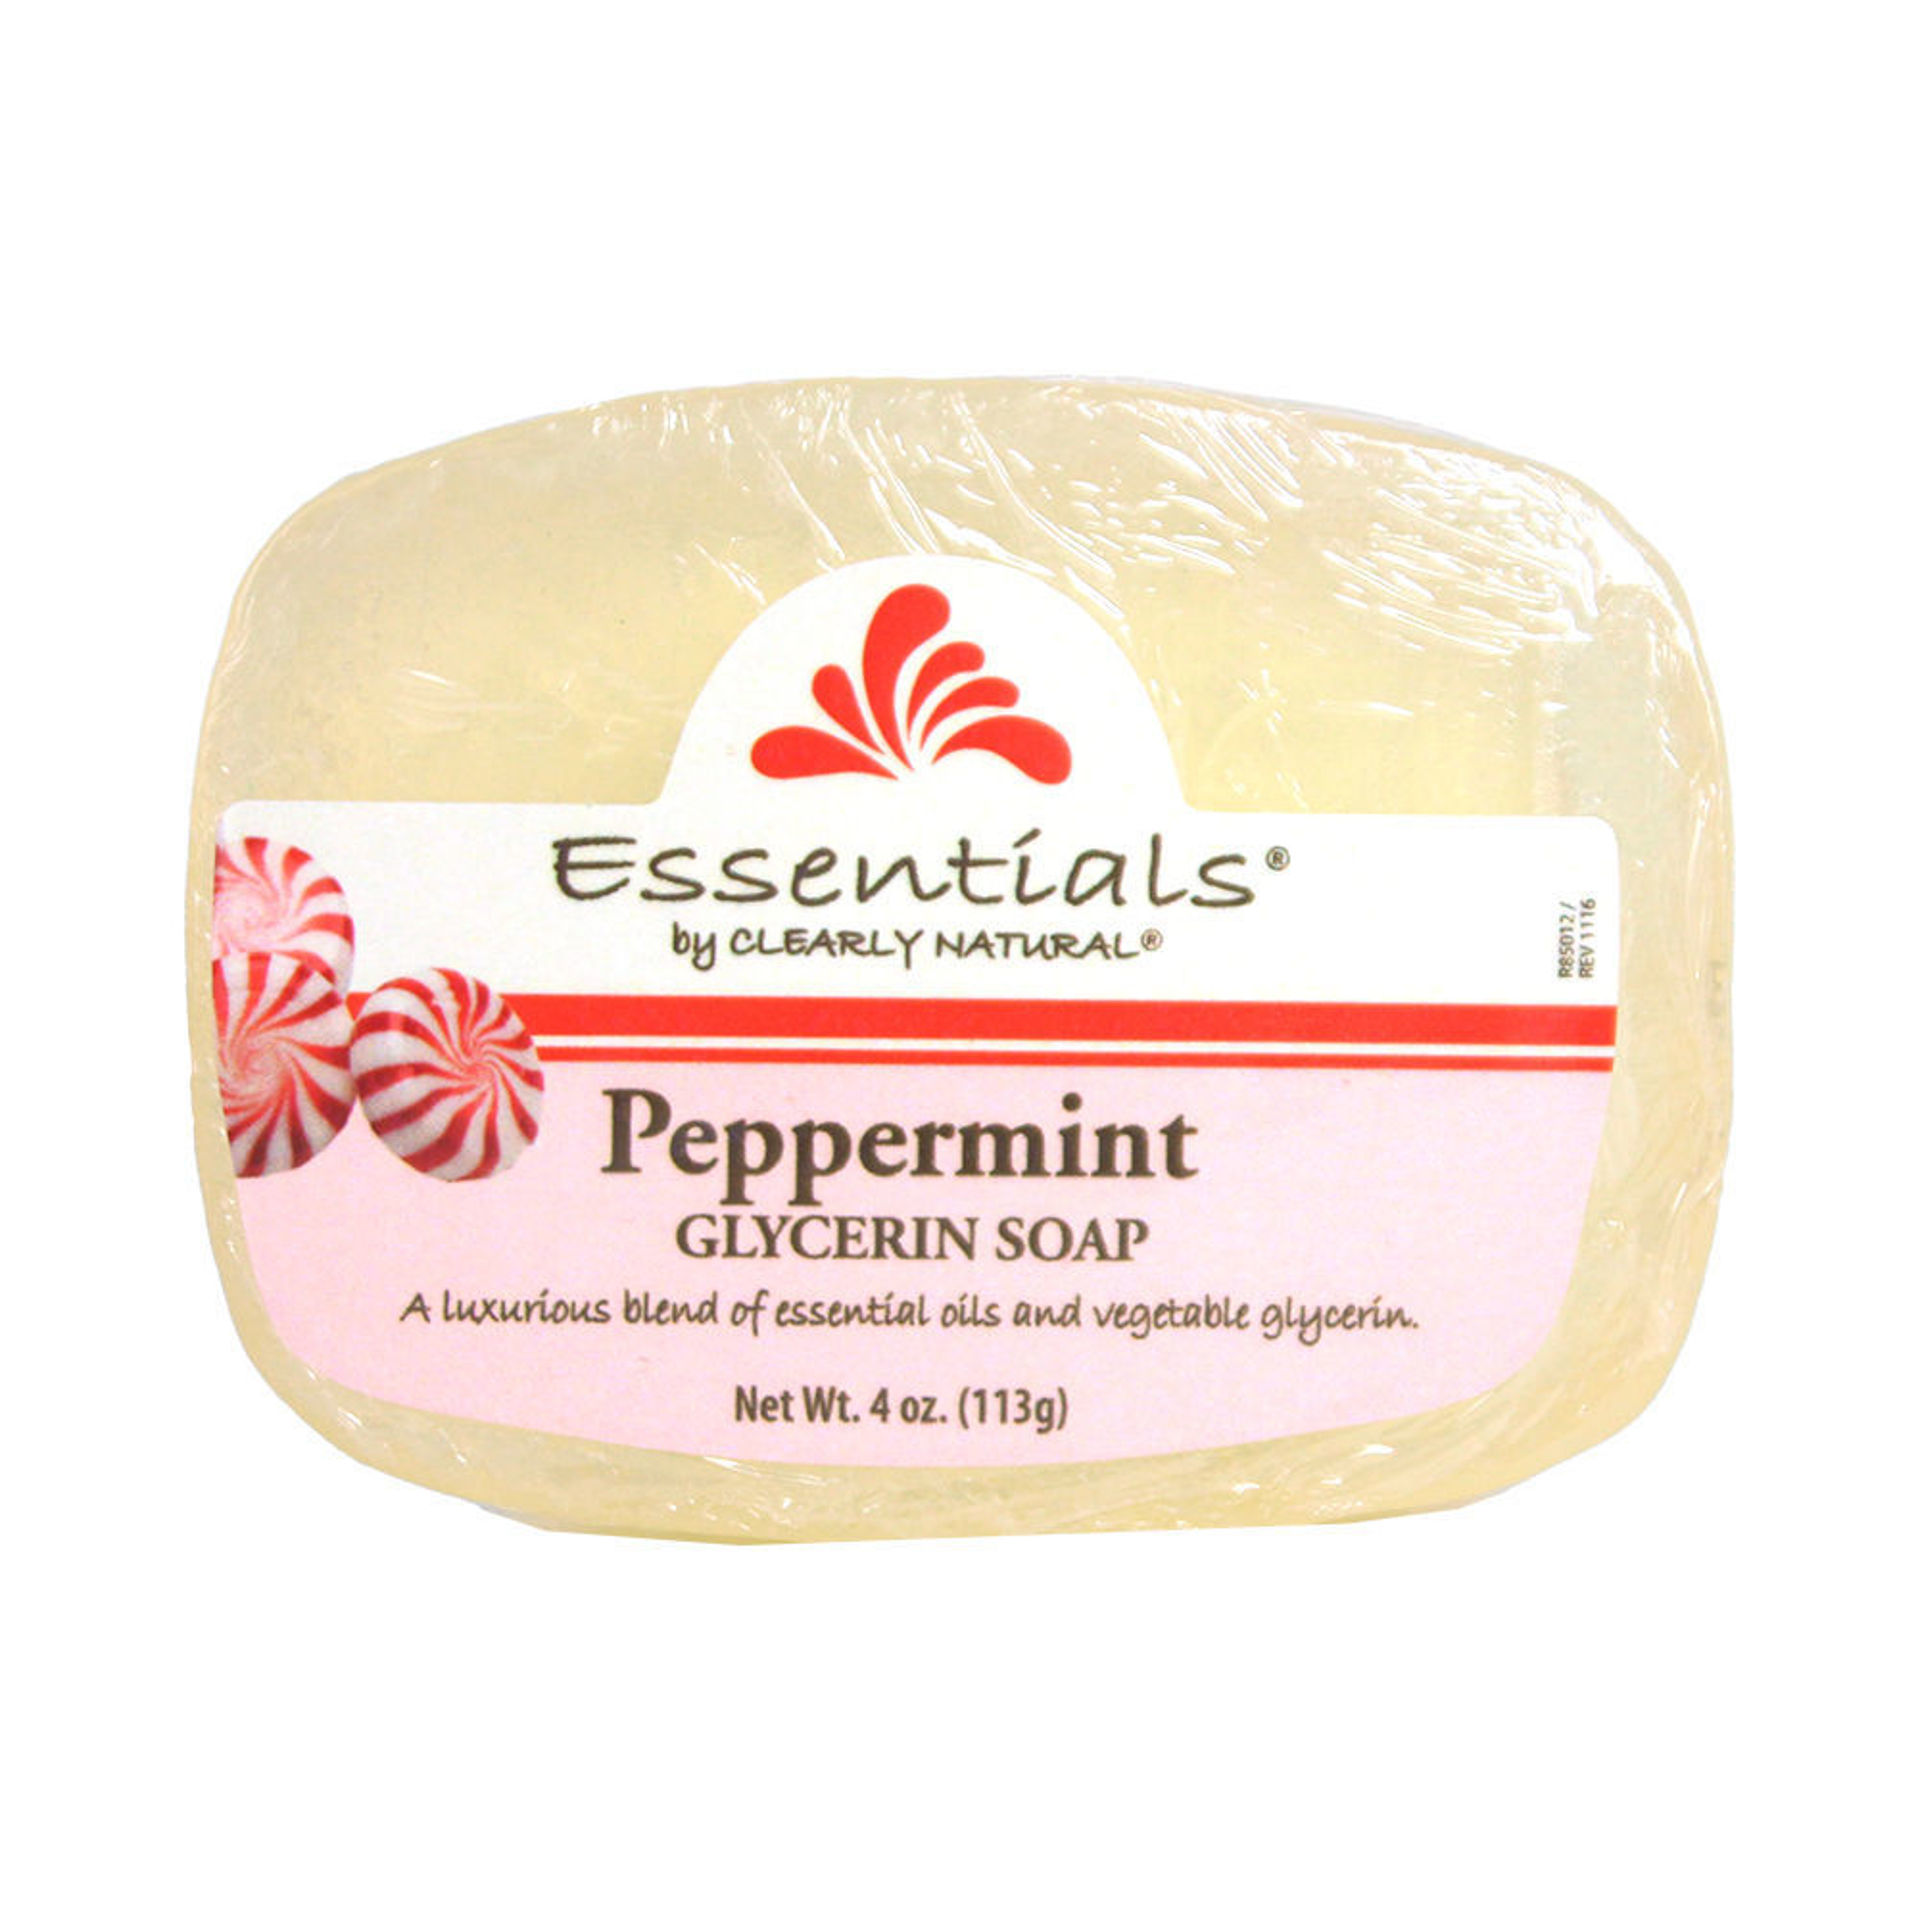 Picture of Clearly Natural Peppermint Soap - 4 oz.